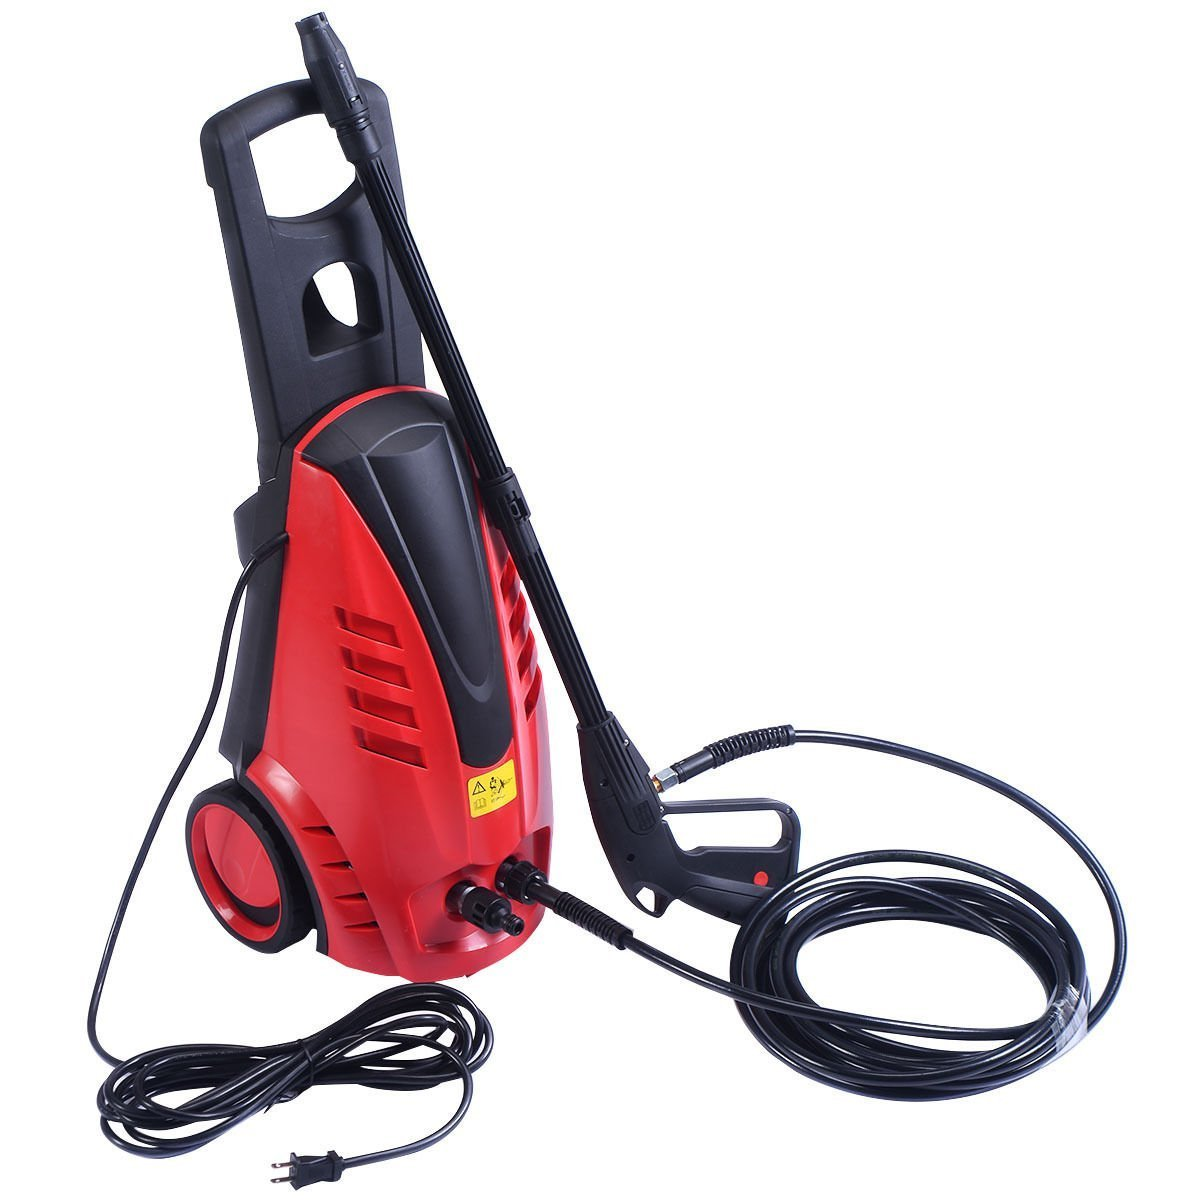 The Best Electric Pressure Washers For Your Garden: Reviews & Buying Guide 5